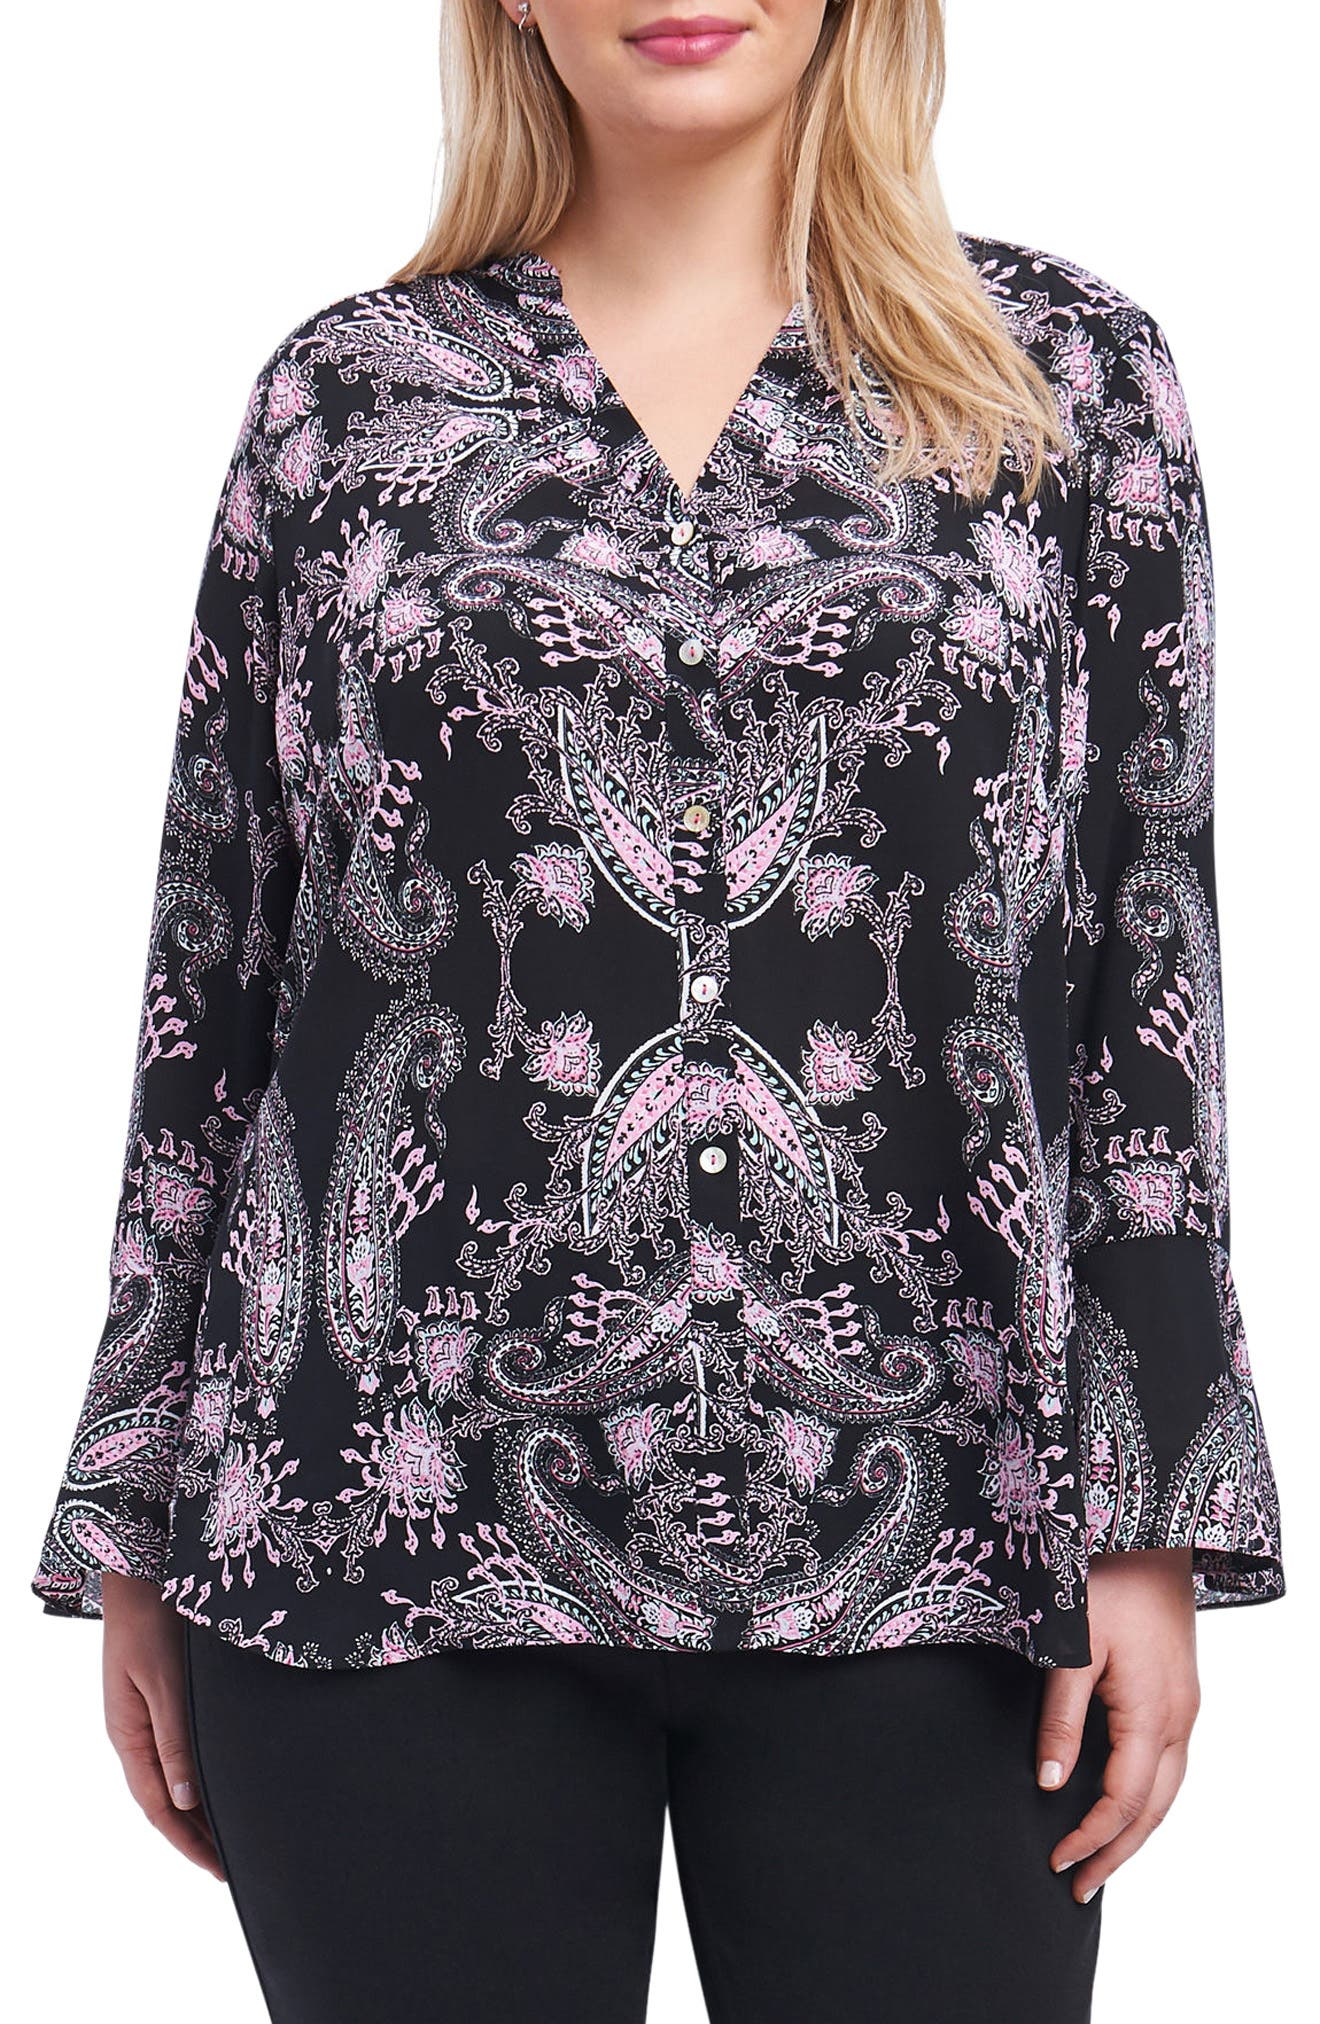 Ali Dolce Vita Bell Sleeve Shirt,                         Main,                         color, 001